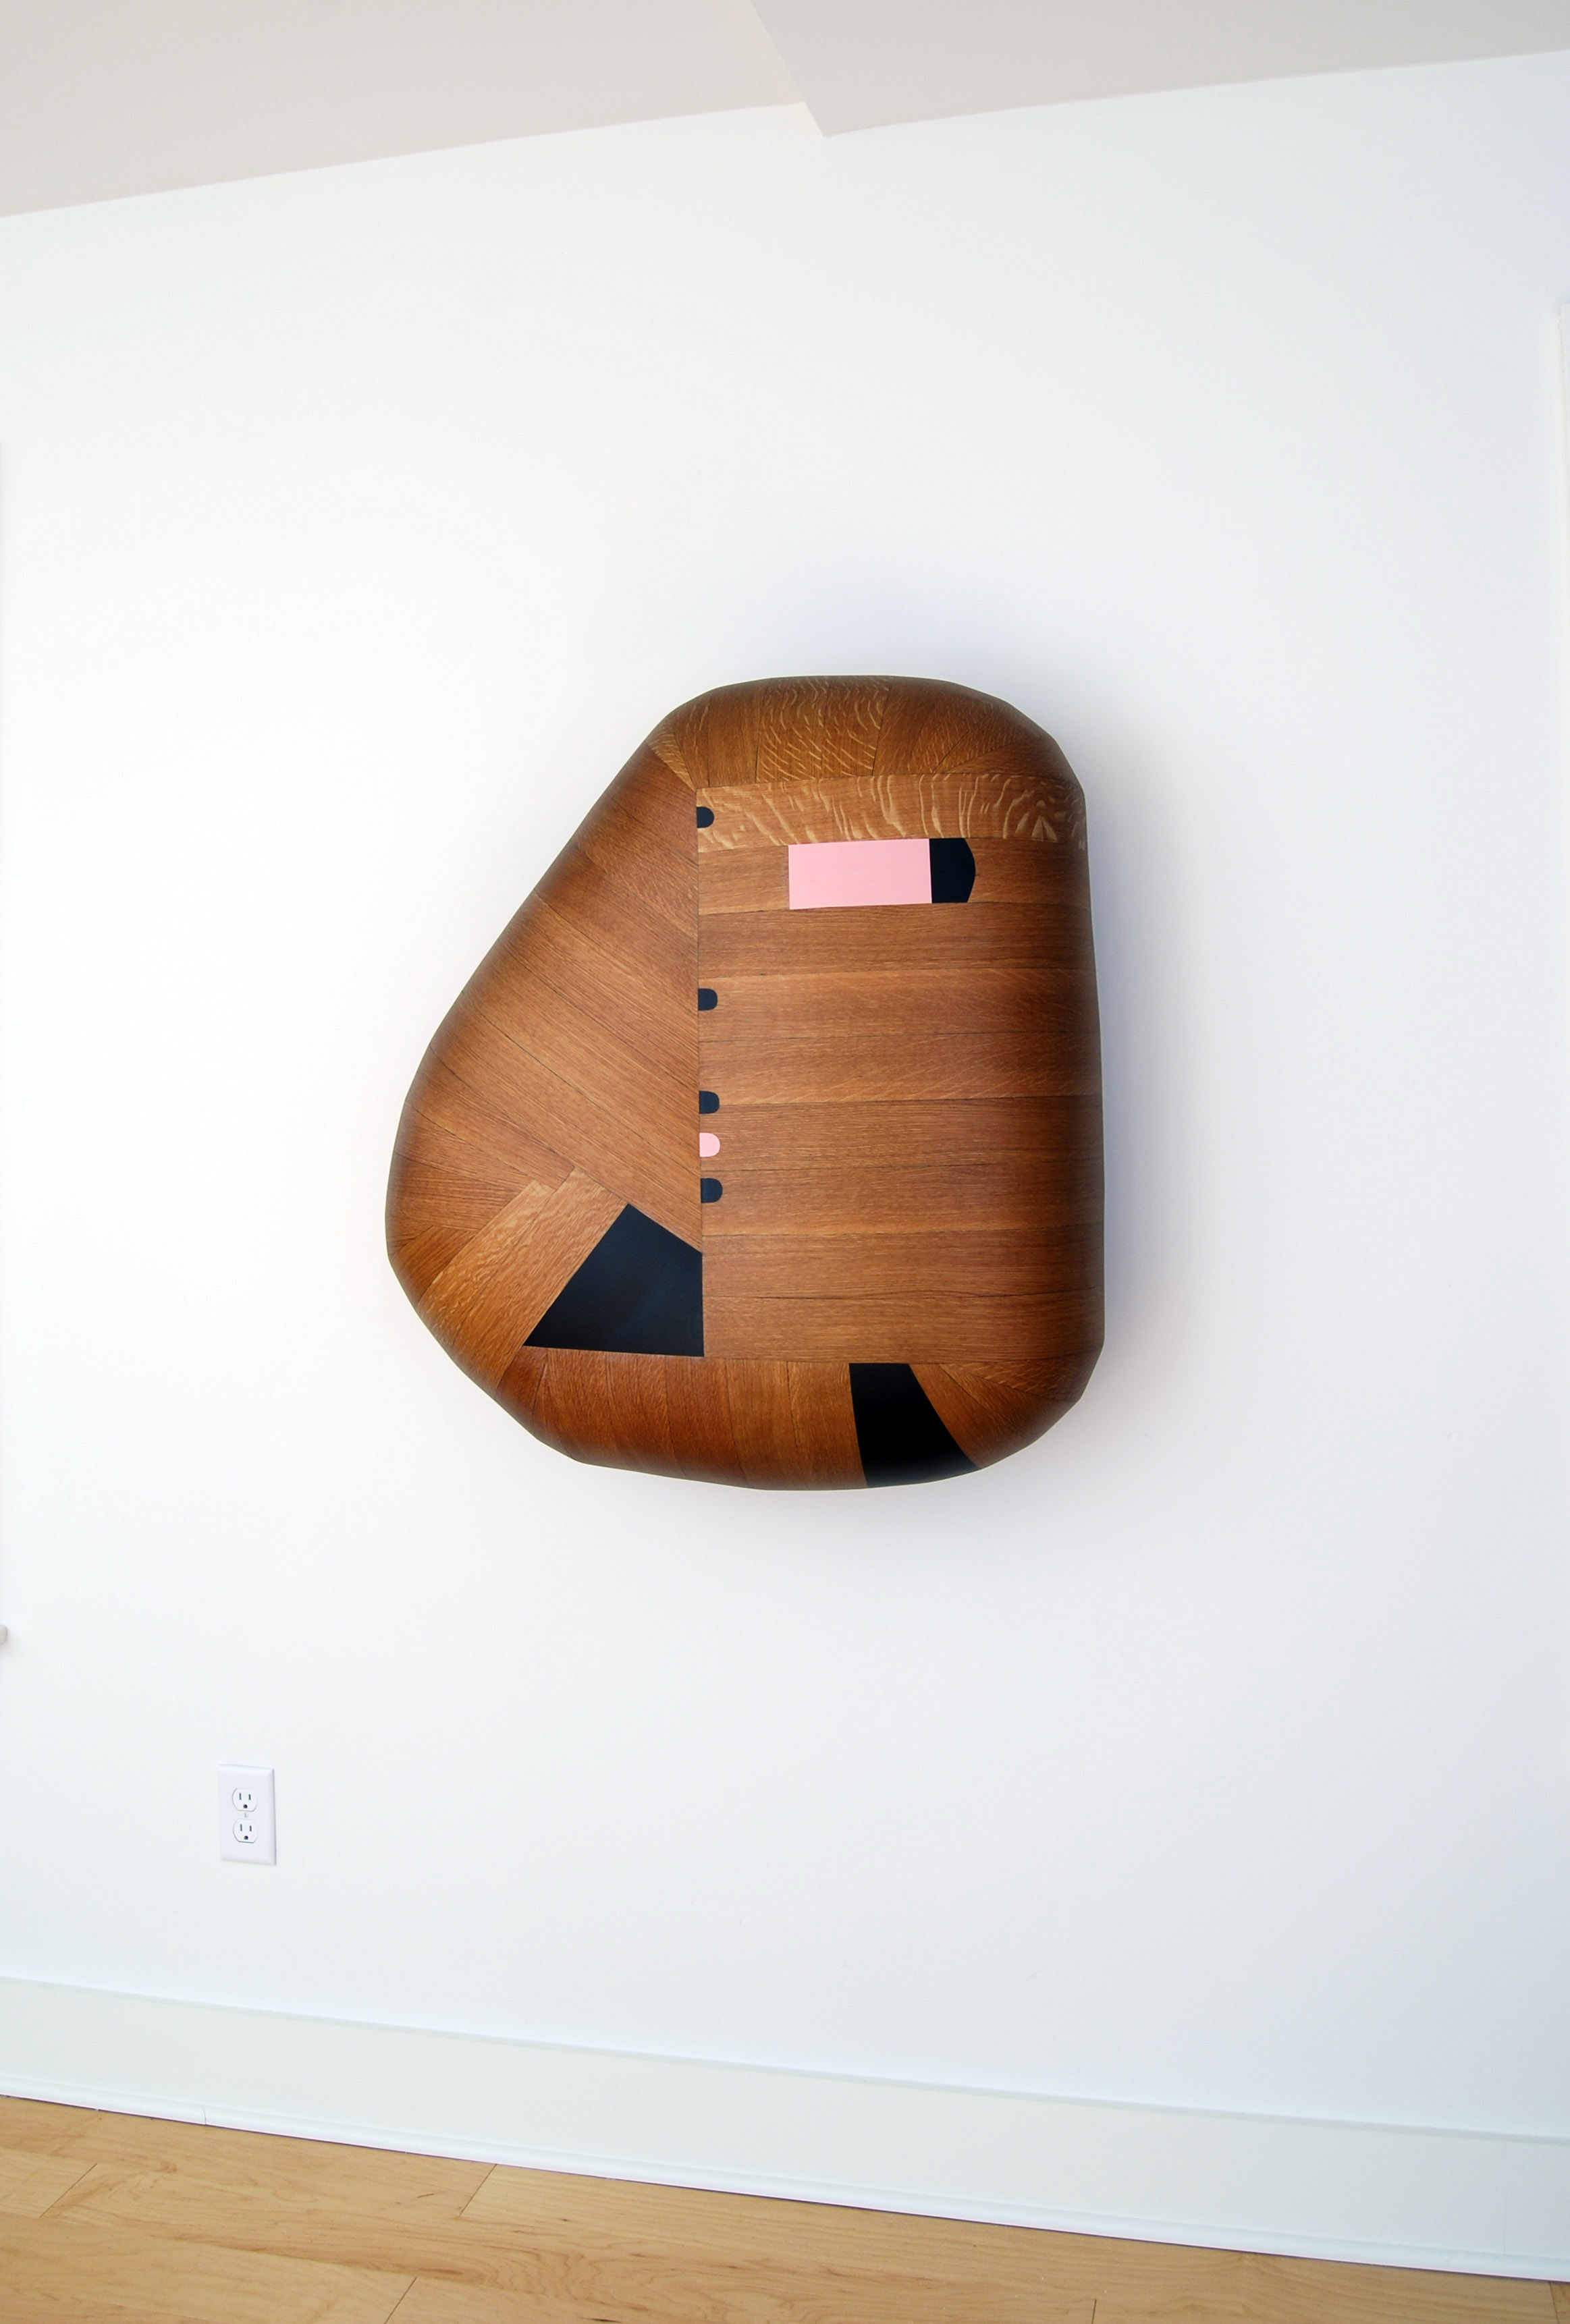 Reissue, 2018  34 x 31 x 12 inches  wood, stain, paint